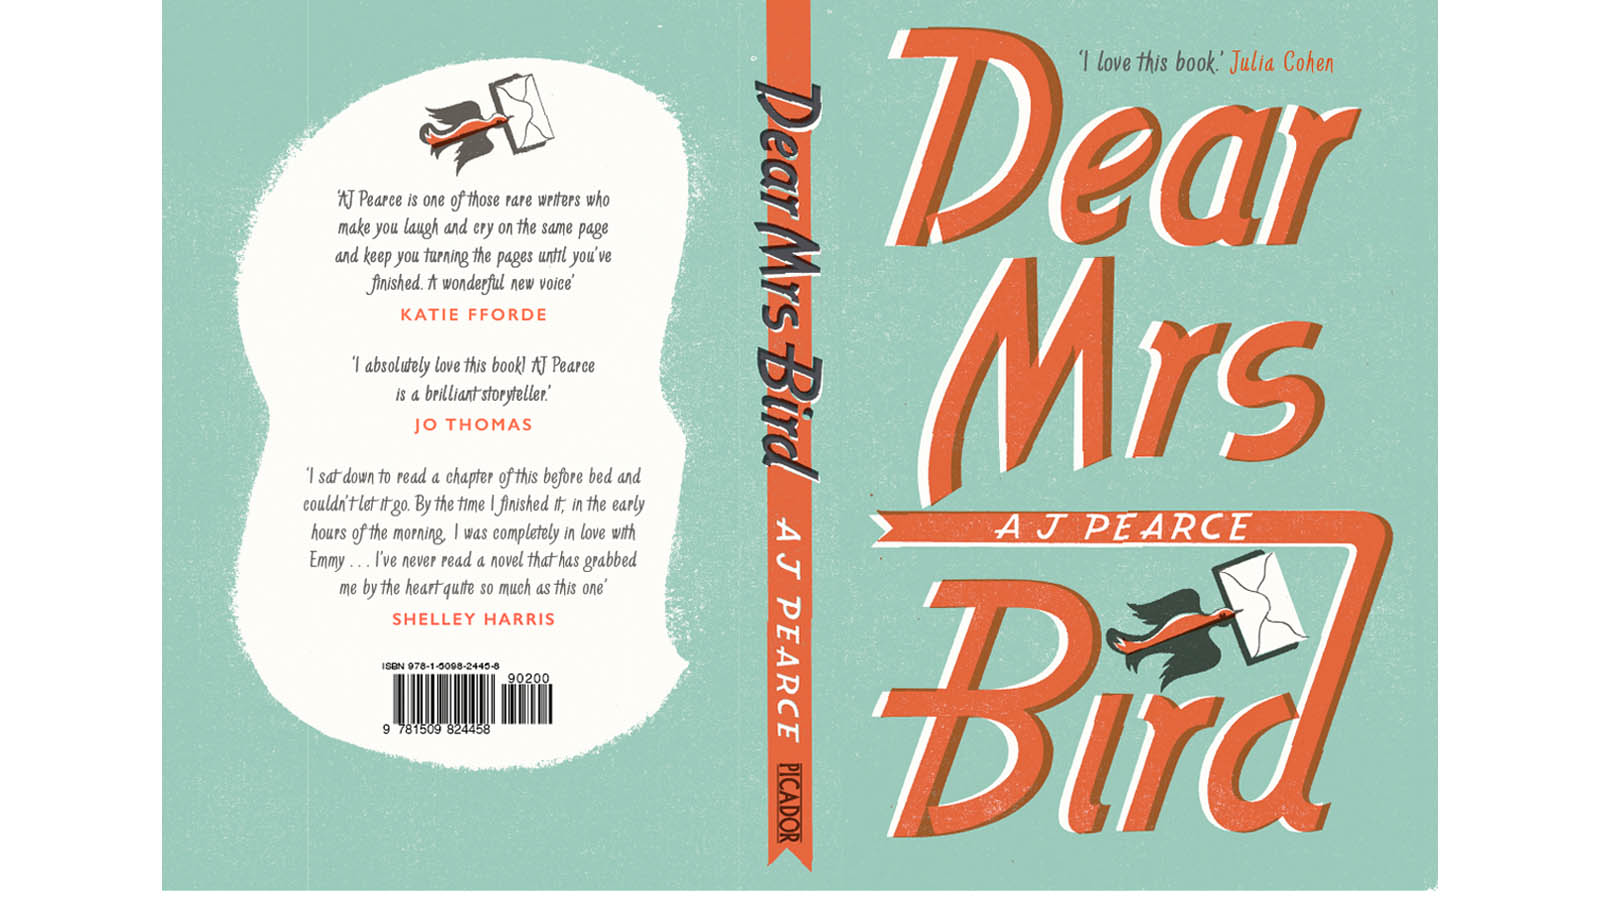 Dear-Mrs-Bird-book-design-cover-AJ-Pearce-Picador